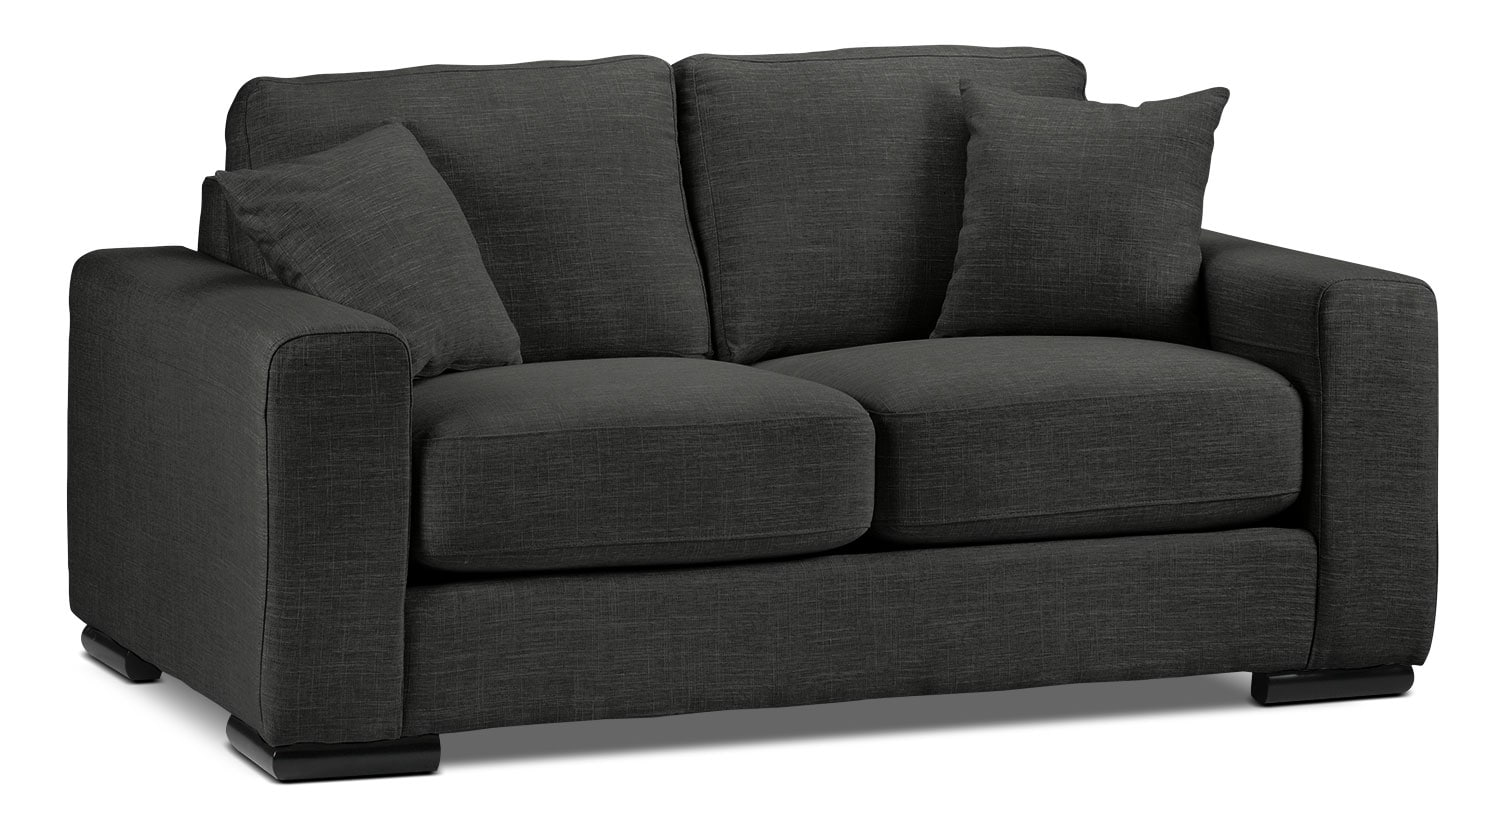 Living Room Furniture - Precious Loveseat - Dark Grey